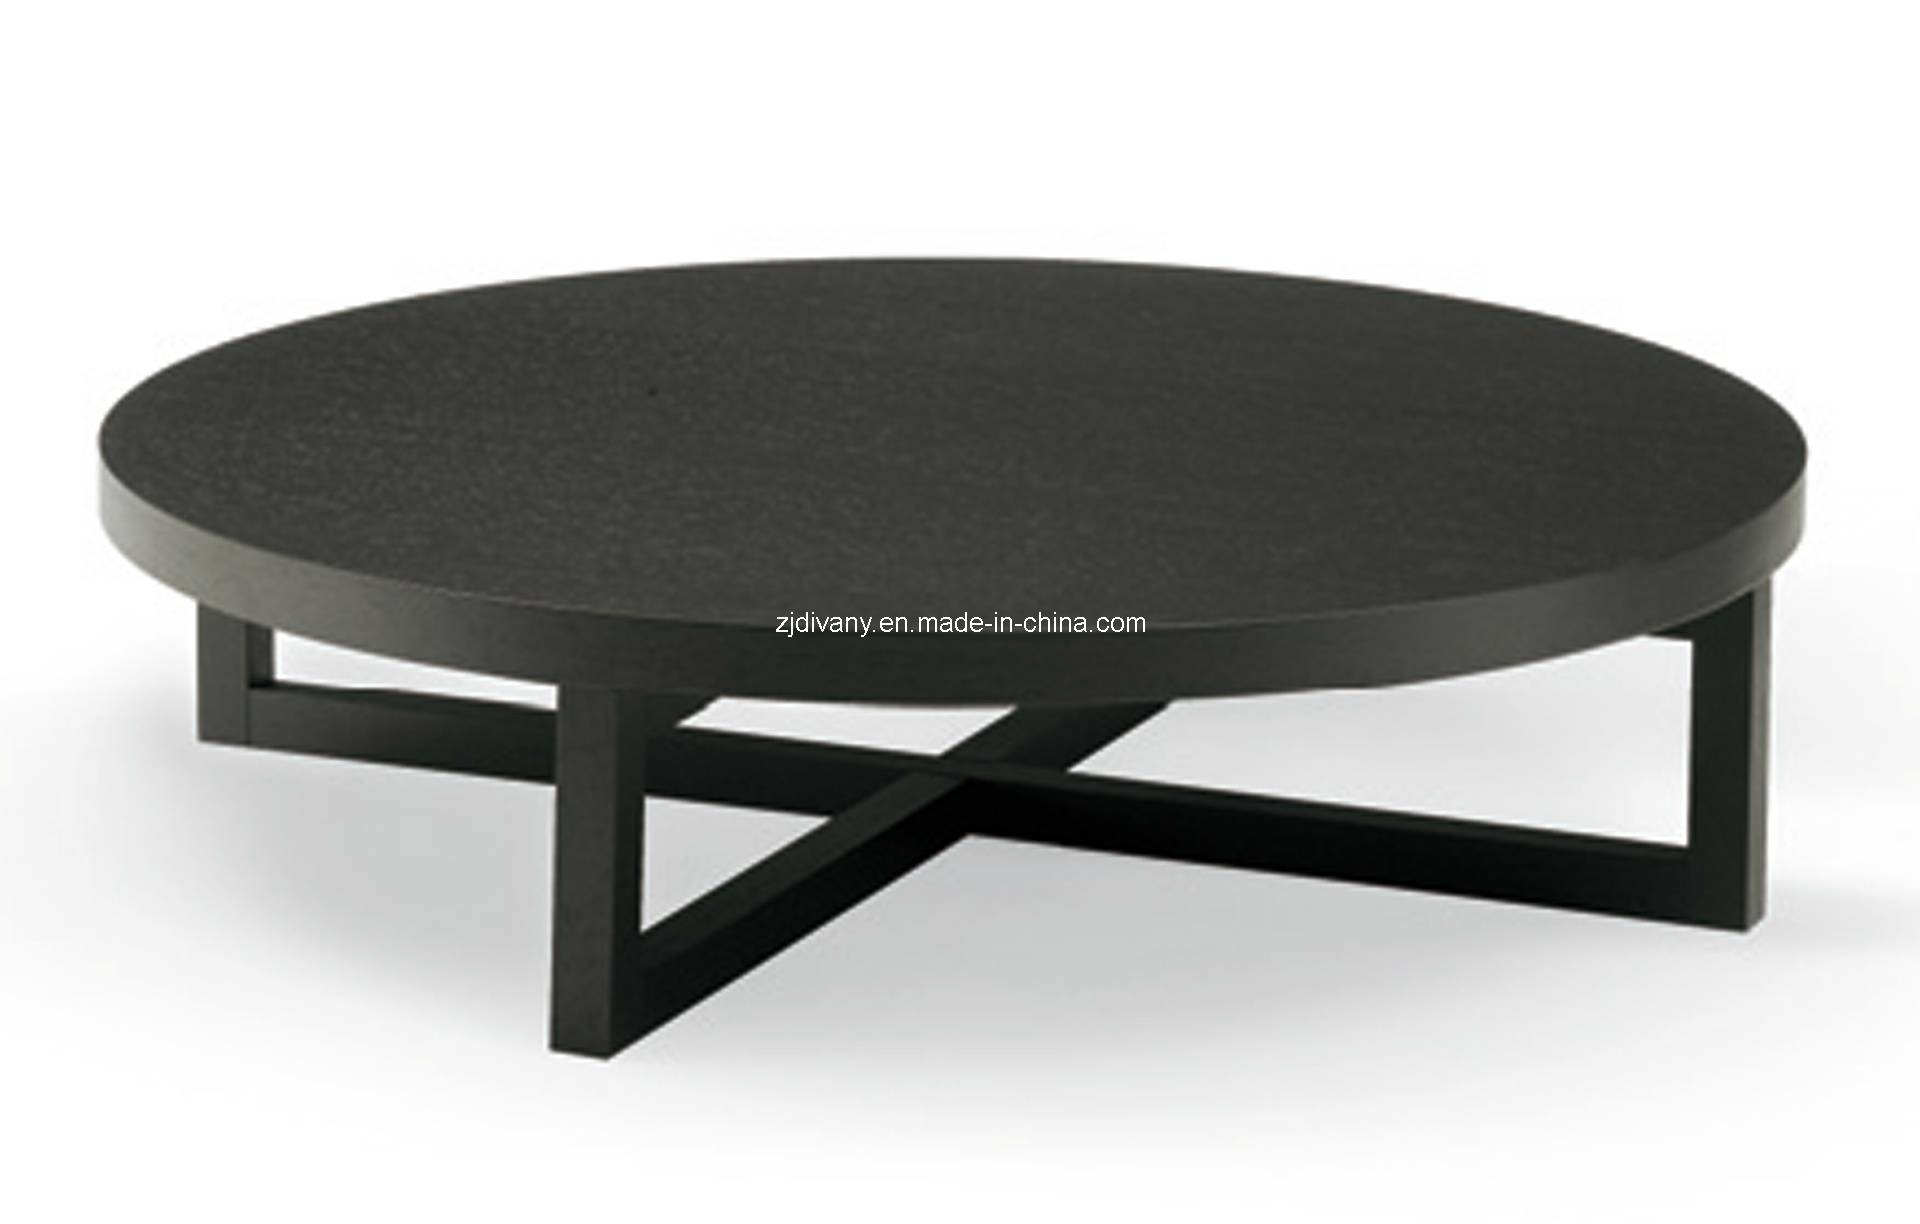 Extra Large Round Coffee Table | Coffee Tables Decoration with regard to Extra Large Low Coffee Tables (Image 5 of 30)